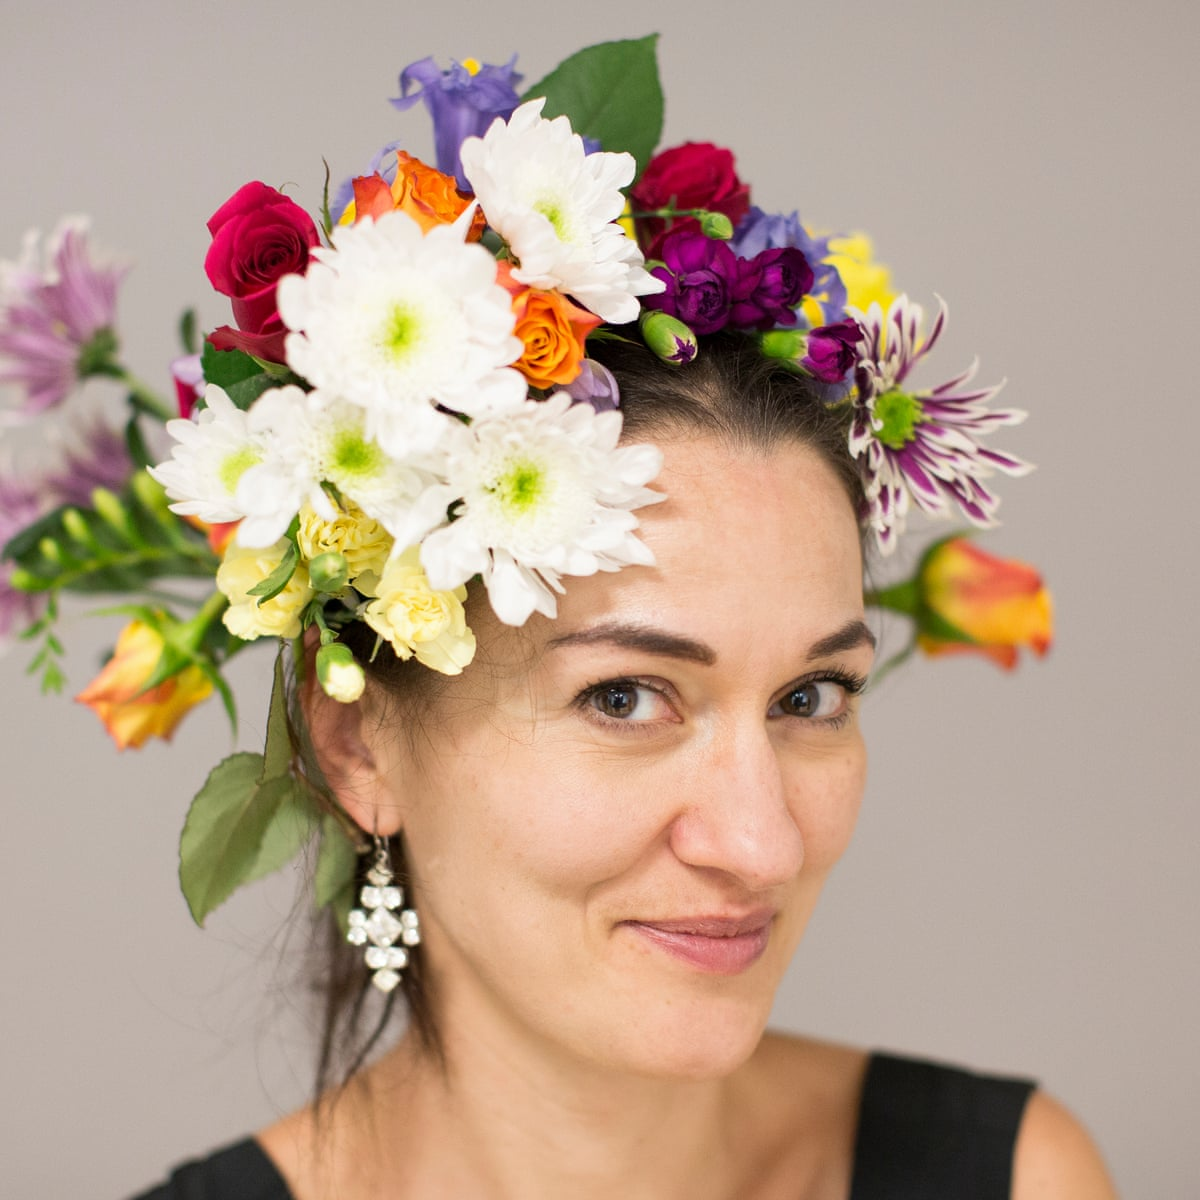 Flower Power How To Make Queen Bey S Floral Crown Accessories The Guardian